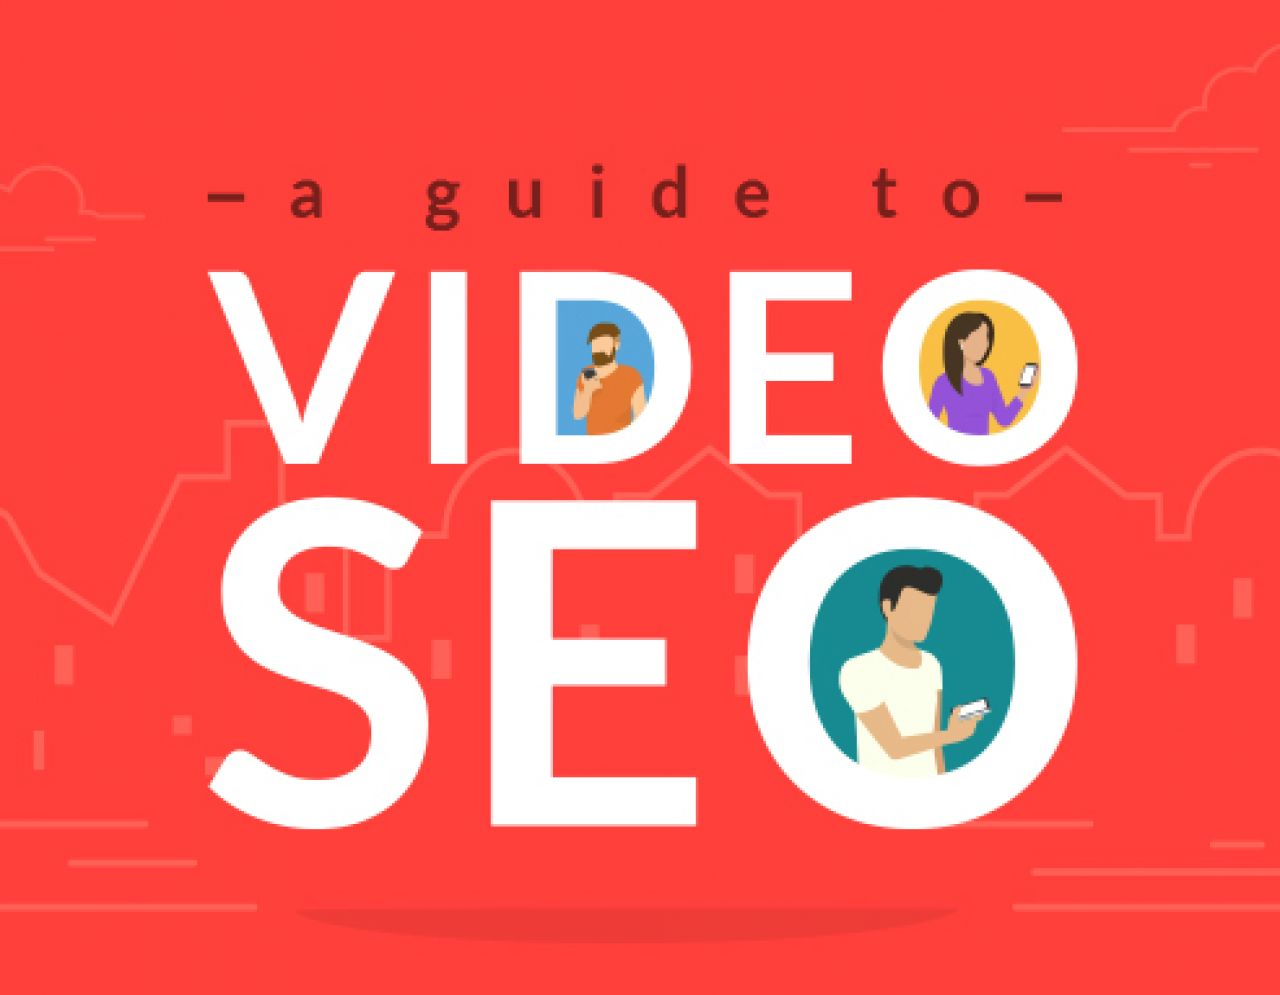 a guide to video seo